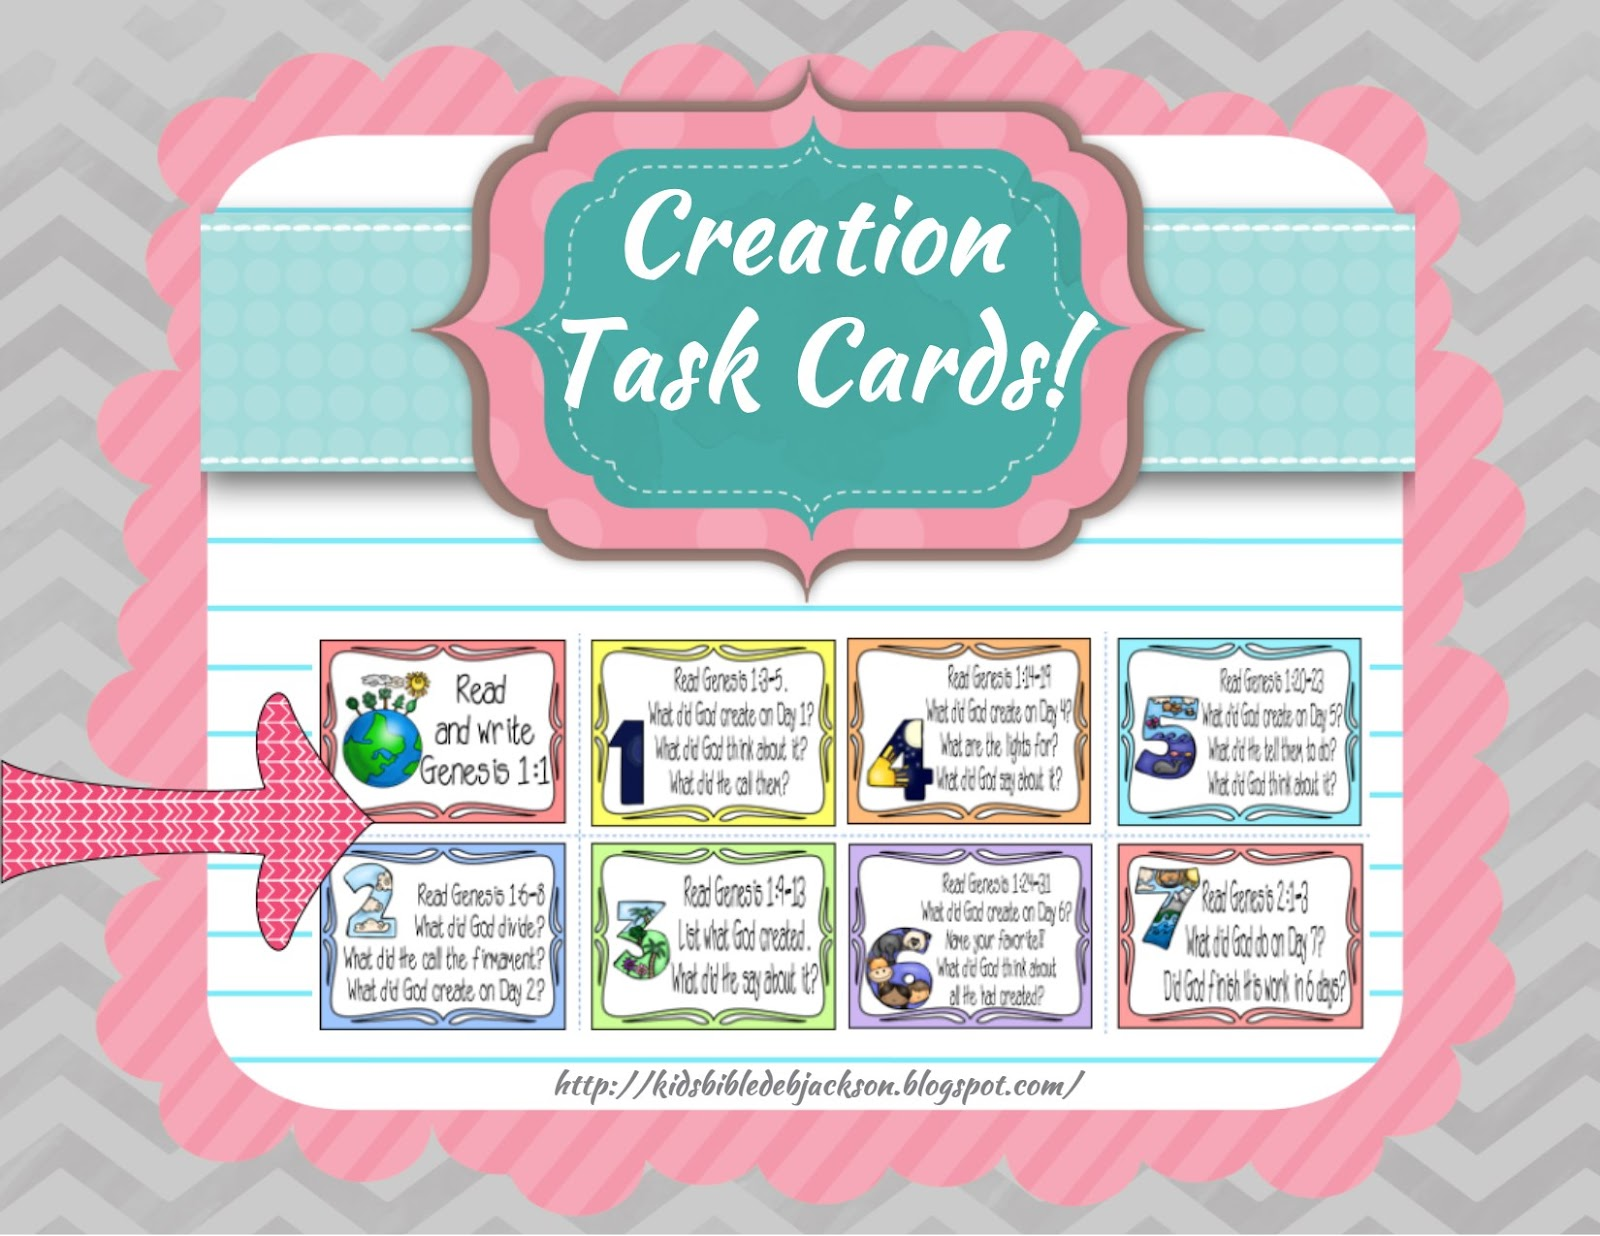 https://www.biblefunforkids.com/2015/01/the-creation-for-kids-day-5.html